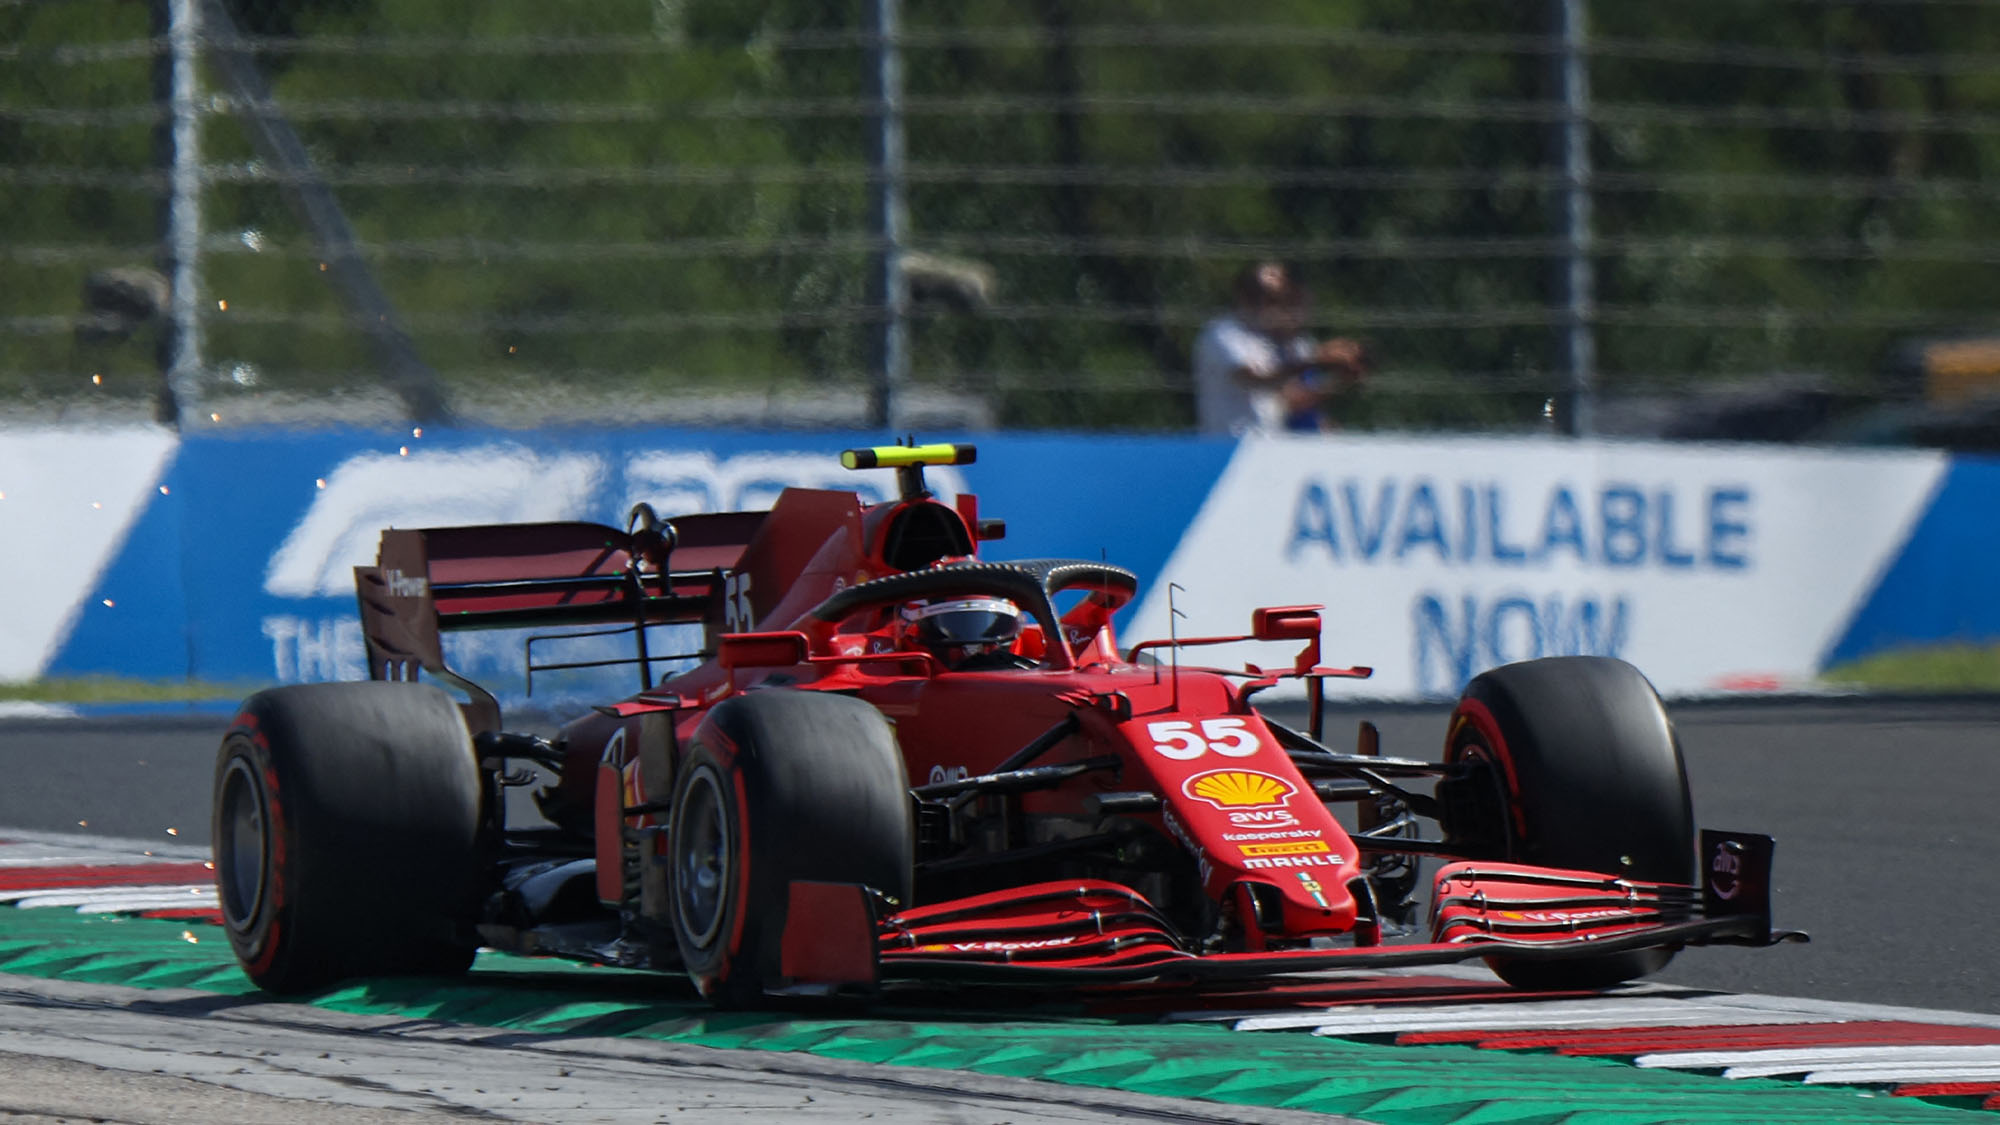 Ferrari's Spanish driver Carlos Sainz Jr drives during the second practice session at the Hungaroring race track in Mogyorod near Budapest on July 30, 2021, ahead of the Formula One Hungarian Grand Prix. (Photo by FERENC ISZA / AFP) (Photo by FERENC ISZA/AFP via Getty Images)